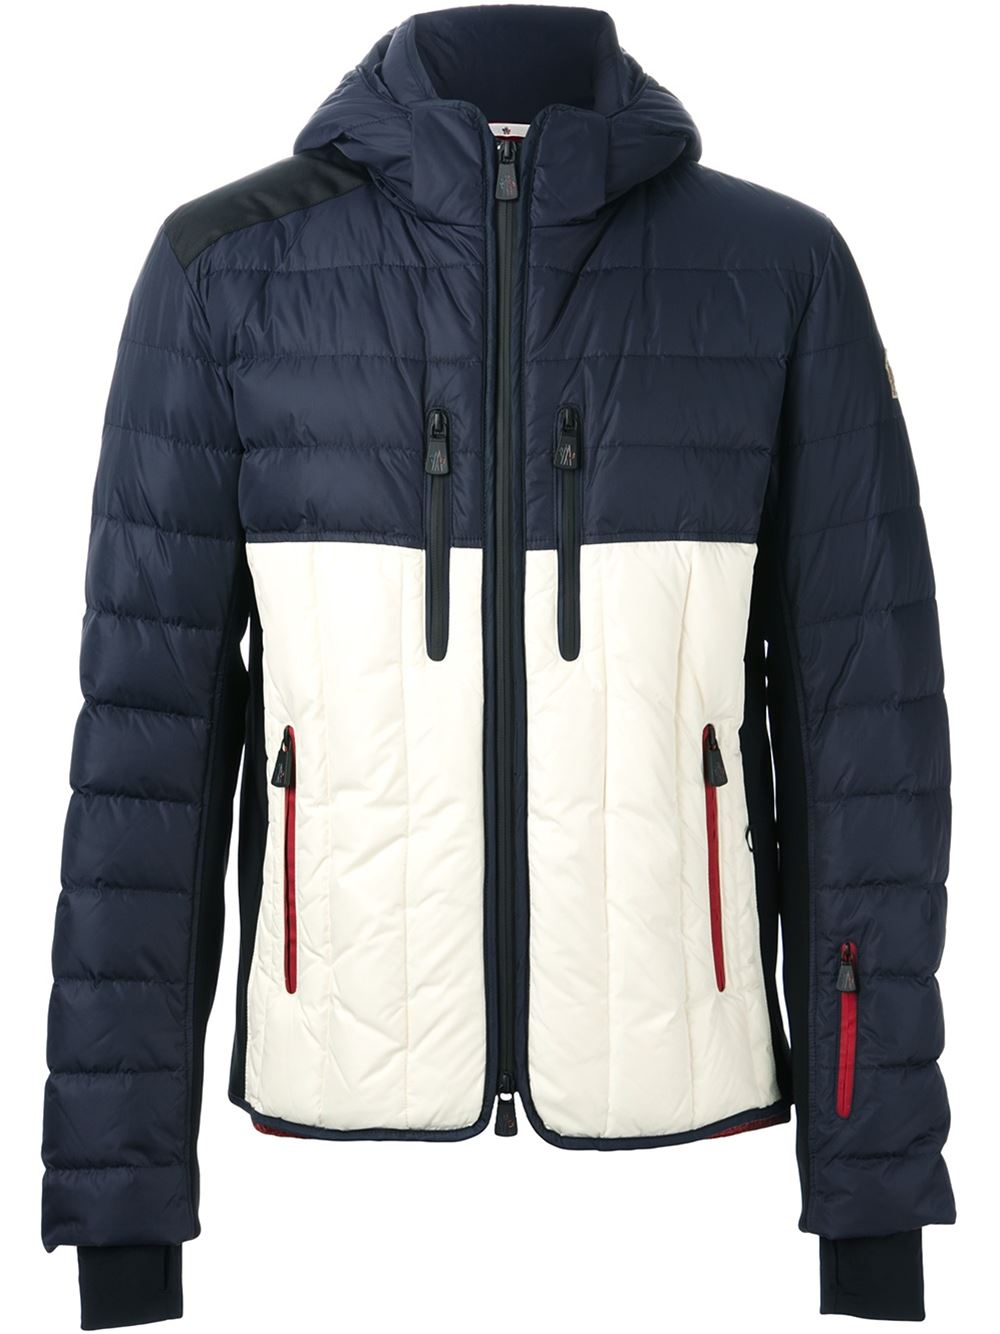 Moncler womens jackets on sale